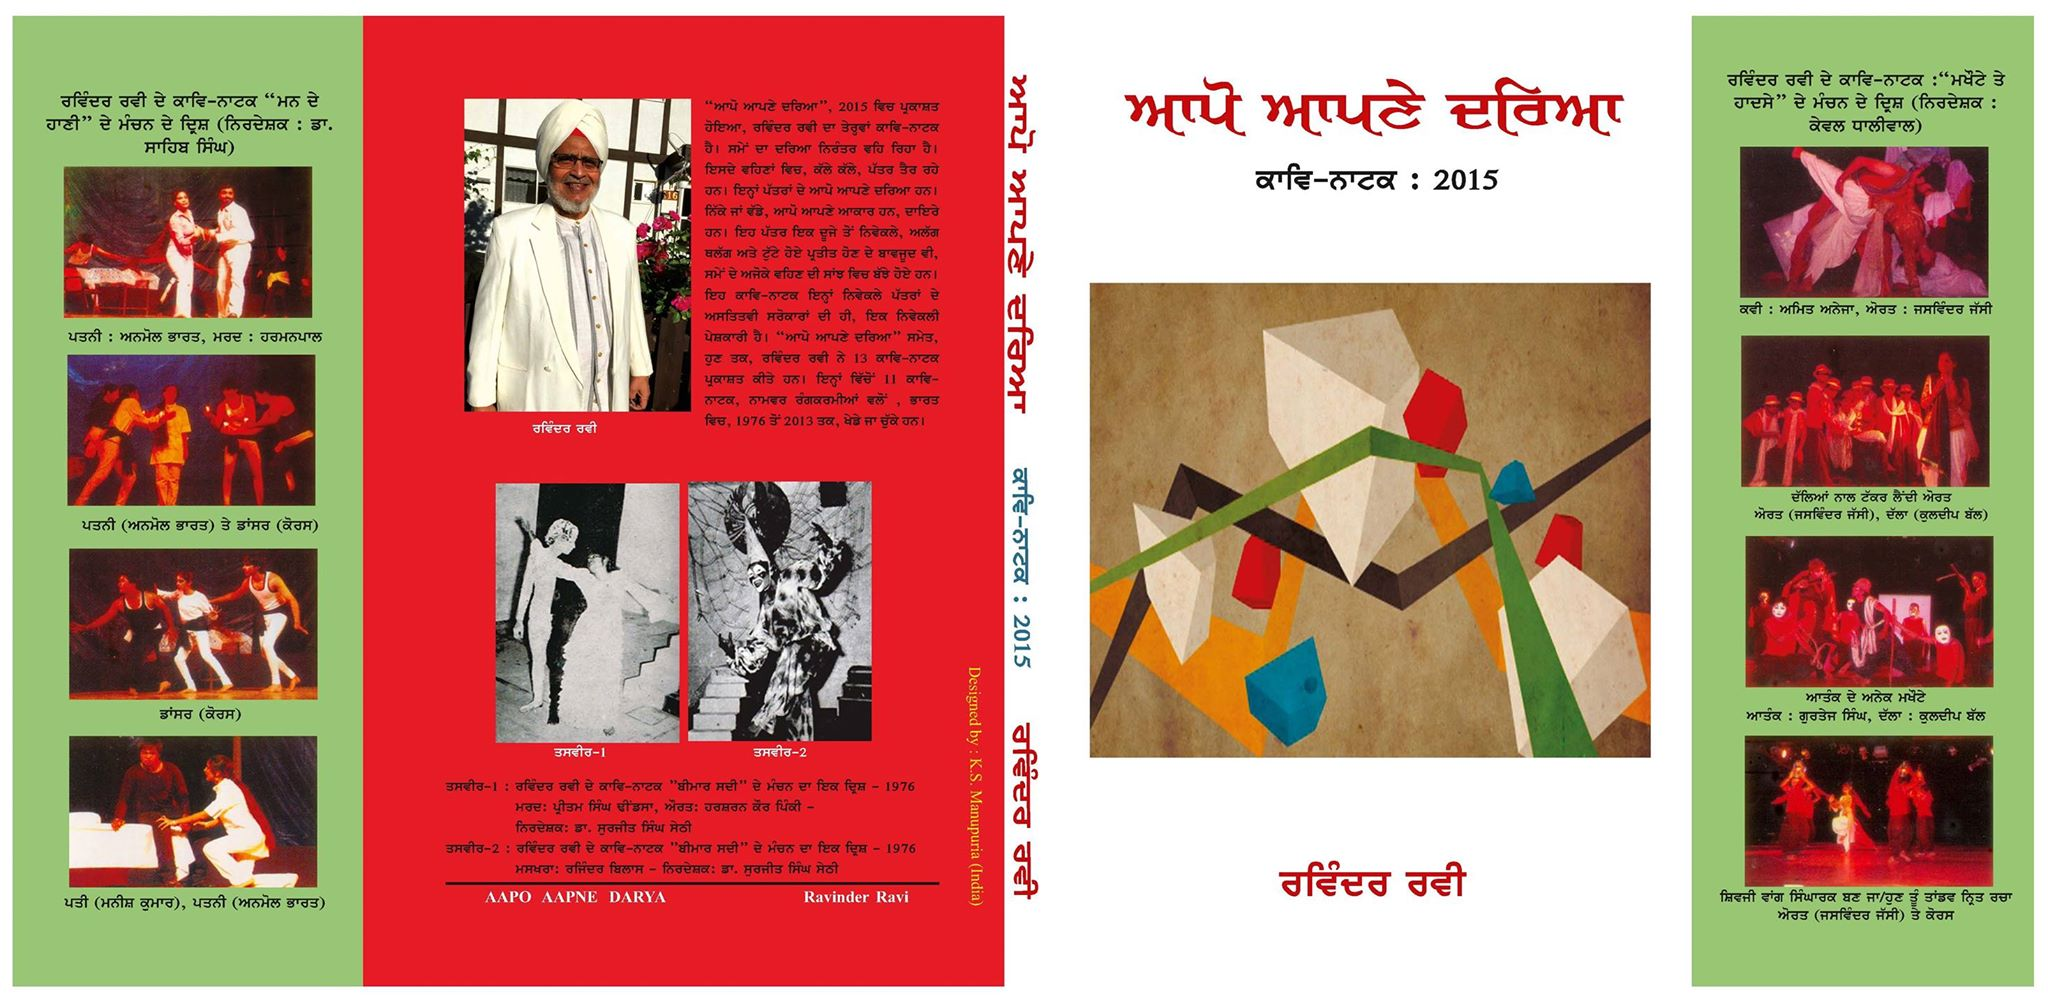 Aapo Apne Darya(2015 - Kaav-Naatak) - Published by National Book Shop, Delhi, India                Title - Copy